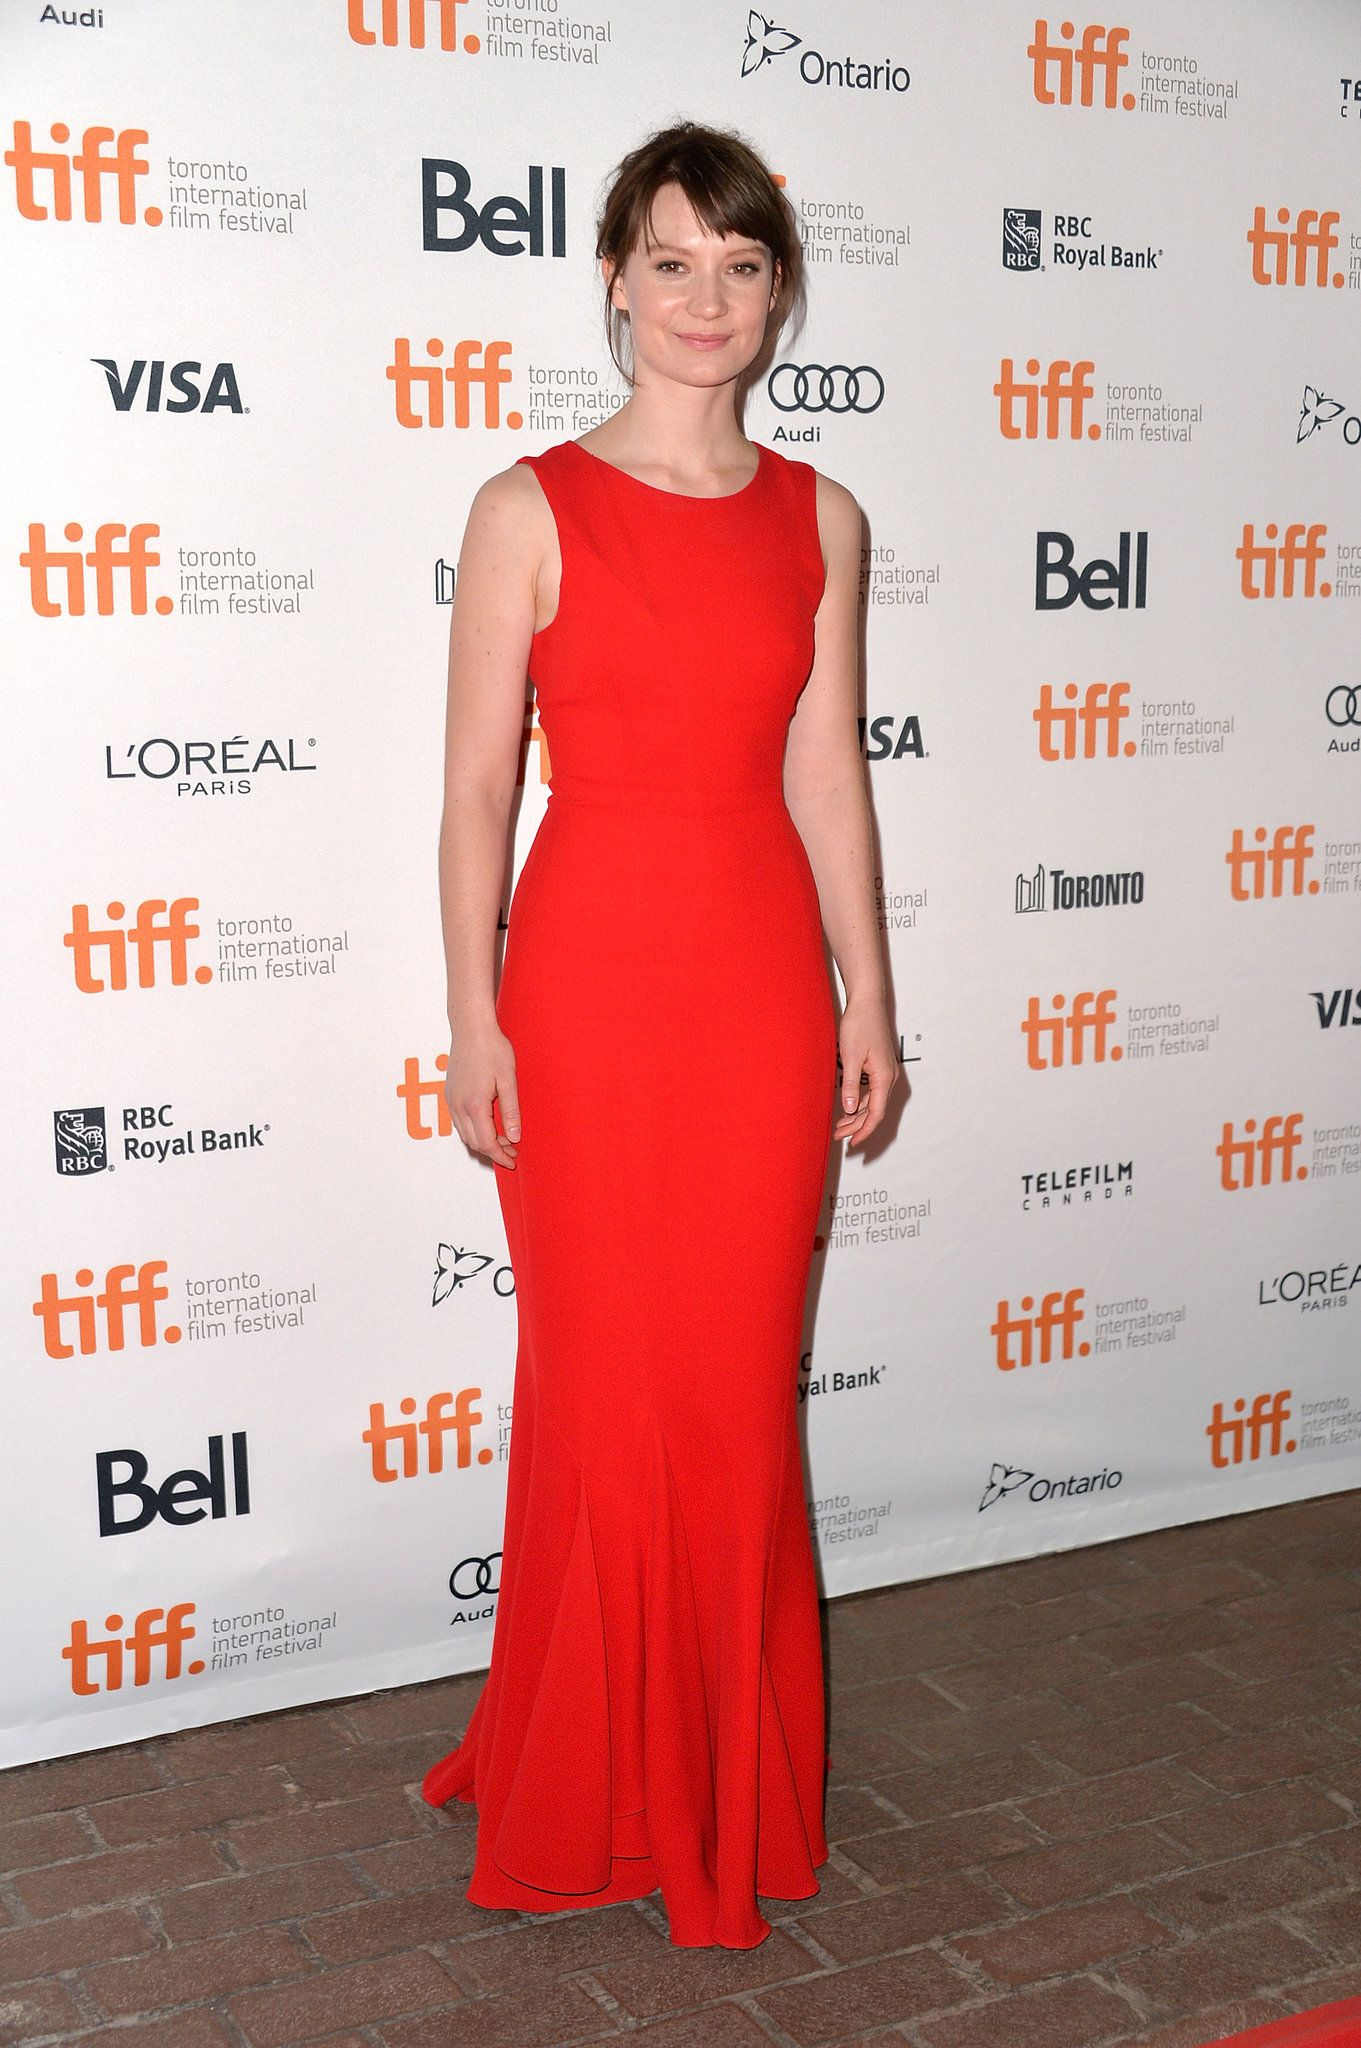 Mia Wasikowska was bright as ever in a Christian Dior red silk gown at the Only Lovers Left Alive premiere at the 2013 Toronto International Film Festival.